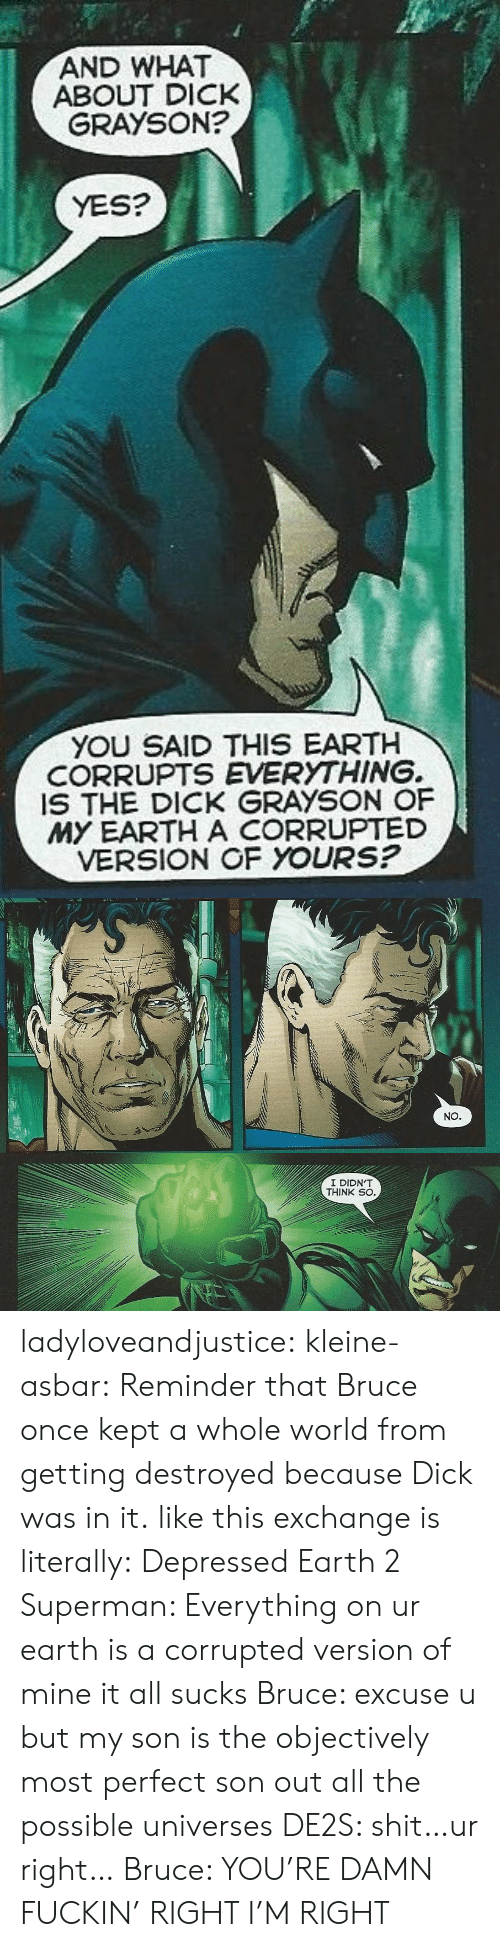 Grayson: AND WHAT  GRAYSON?  ABOUT DICK  YES?  YOU SAID THIS EARTH  CORRUPTS EVERYTHING.  IS THE DICK GRAYSON OF  MY EARTH A CORRUPTED  VERSION OF YOURS?   NO   I DIDN'T  THINK SO ladyloveandjustice:  kleine-asbar: Reminder that Bruce once kept a whole world from getting destroyed because Dick was in it. like this exchange is literally: Depressed Earth 2 Superman: Everything on ur earth is a corrupted version of mine it all sucks Bruce: excuse u but my son is the objectively most perfect son out all the possible universes DE2S: shit…ur right… Bruce: YOU'RE DAMN FUCKIN' RIGHT I'M RIGHT